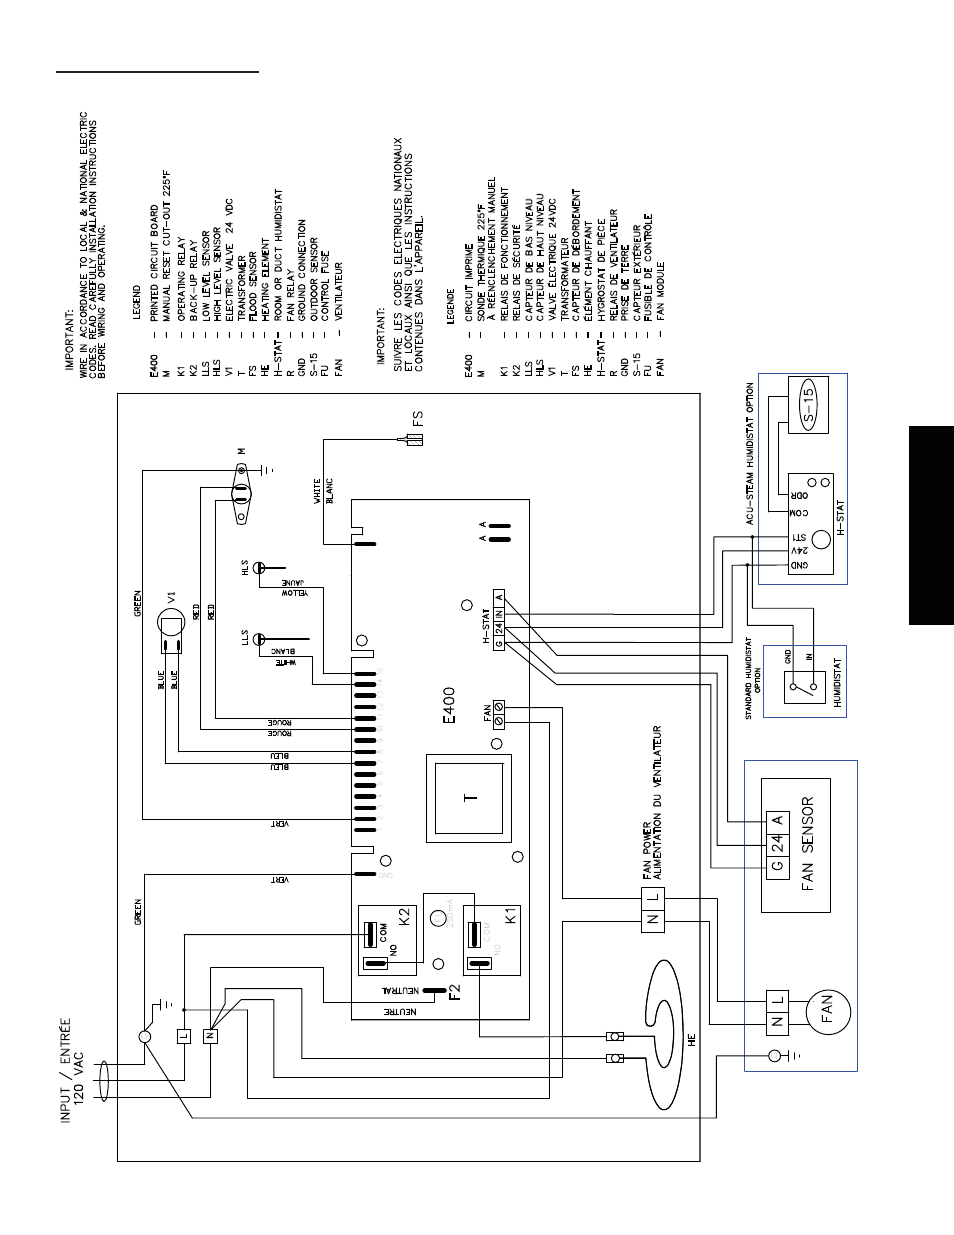 thermolec splitsteam page29?resize=665%2C861 markel duct heater wiring diagram electric baseboard thermostat indeeco duct heater wiring diagram at couponss.co